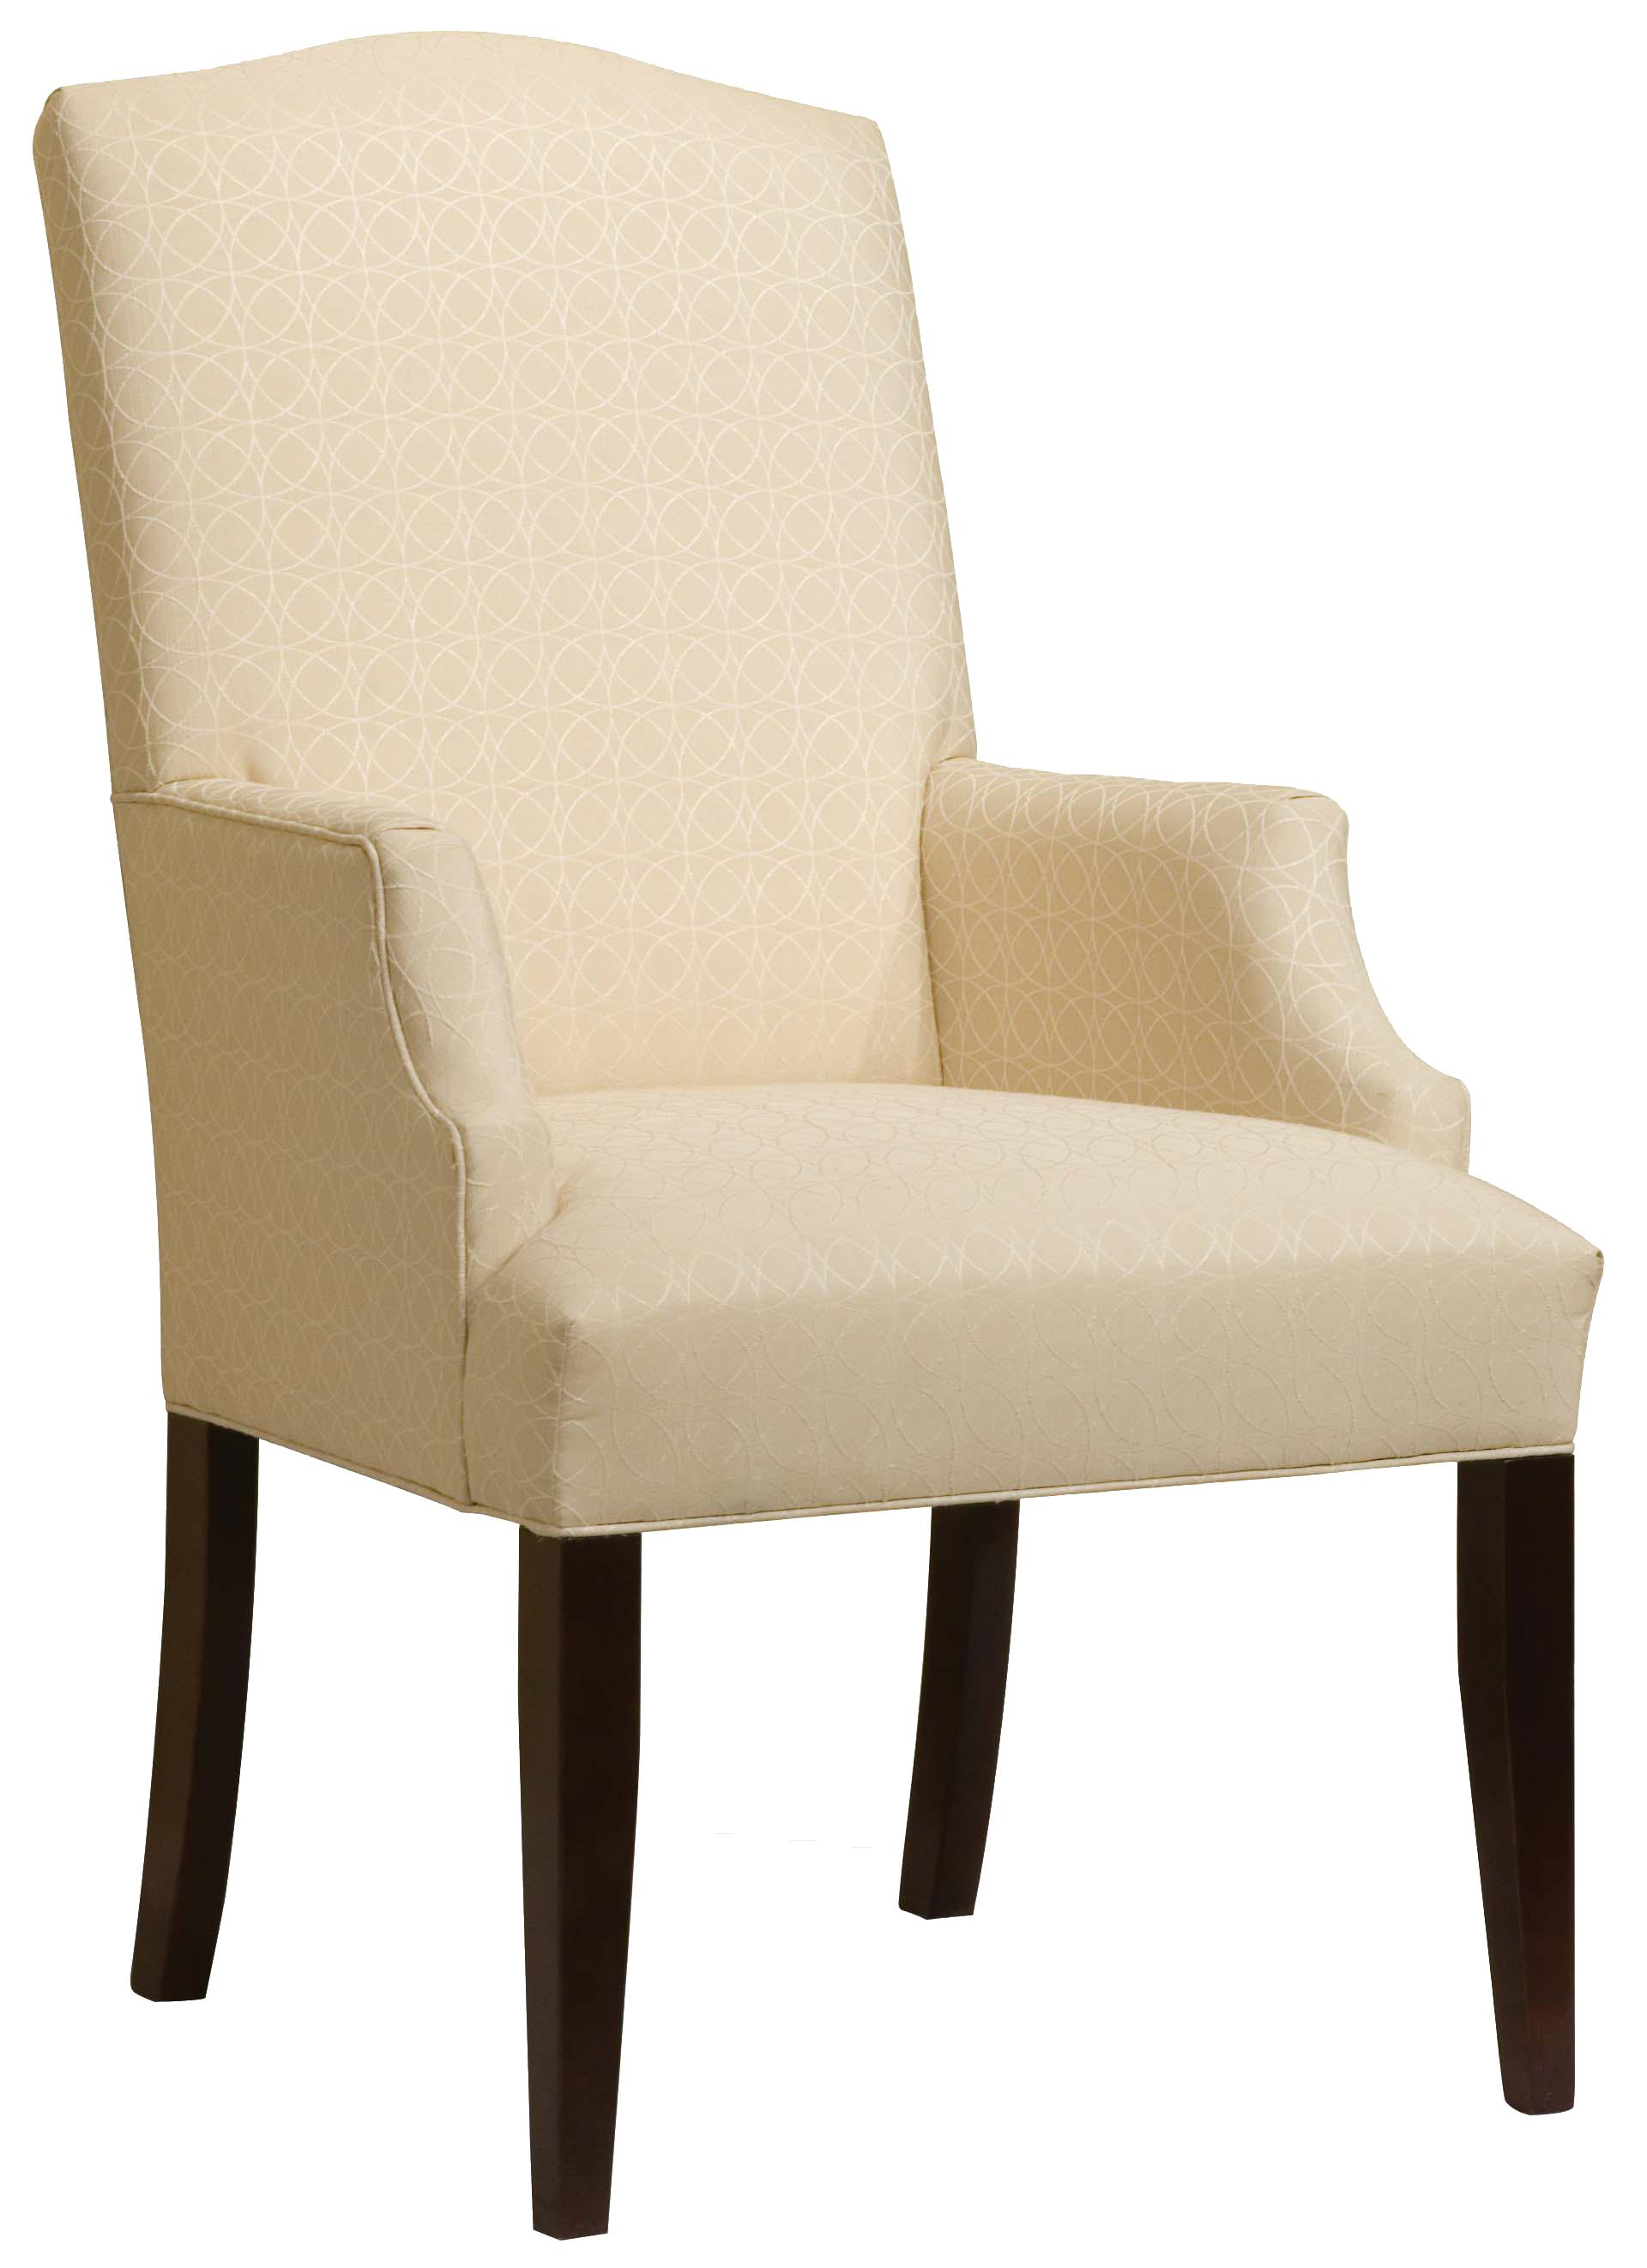 Fairfield Chairs Upholstered Arm Chair - Item Number: 6013-04